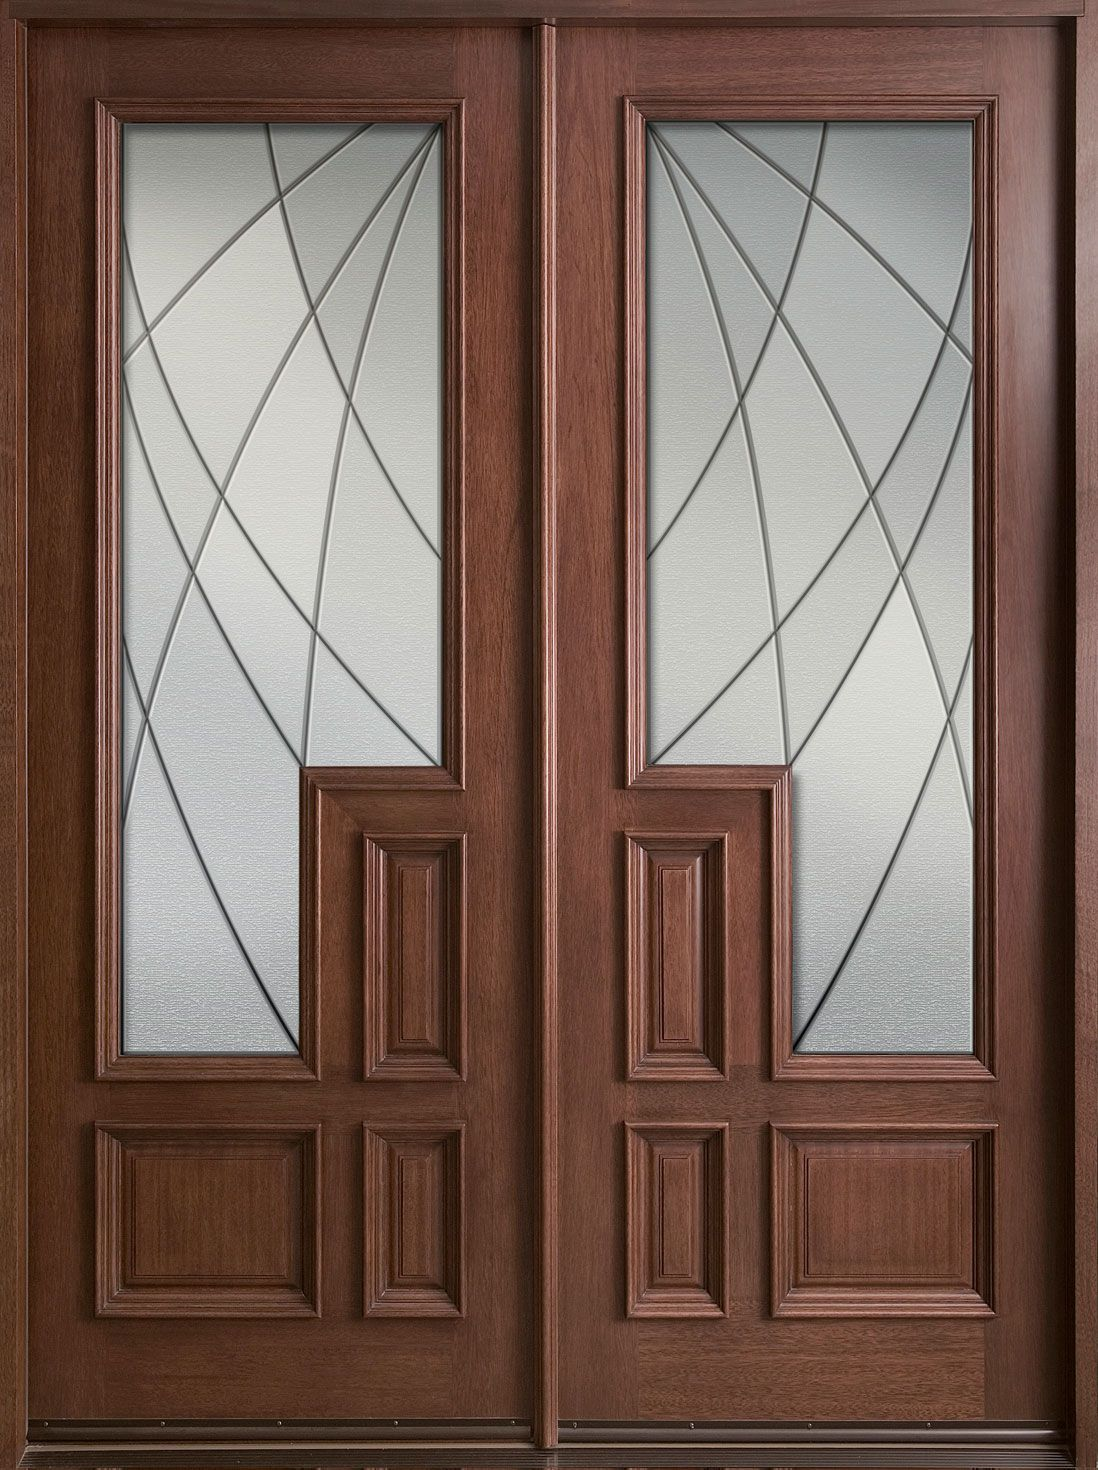 Inspiring double fiberglass entry door as furniture for for Double door wooden door